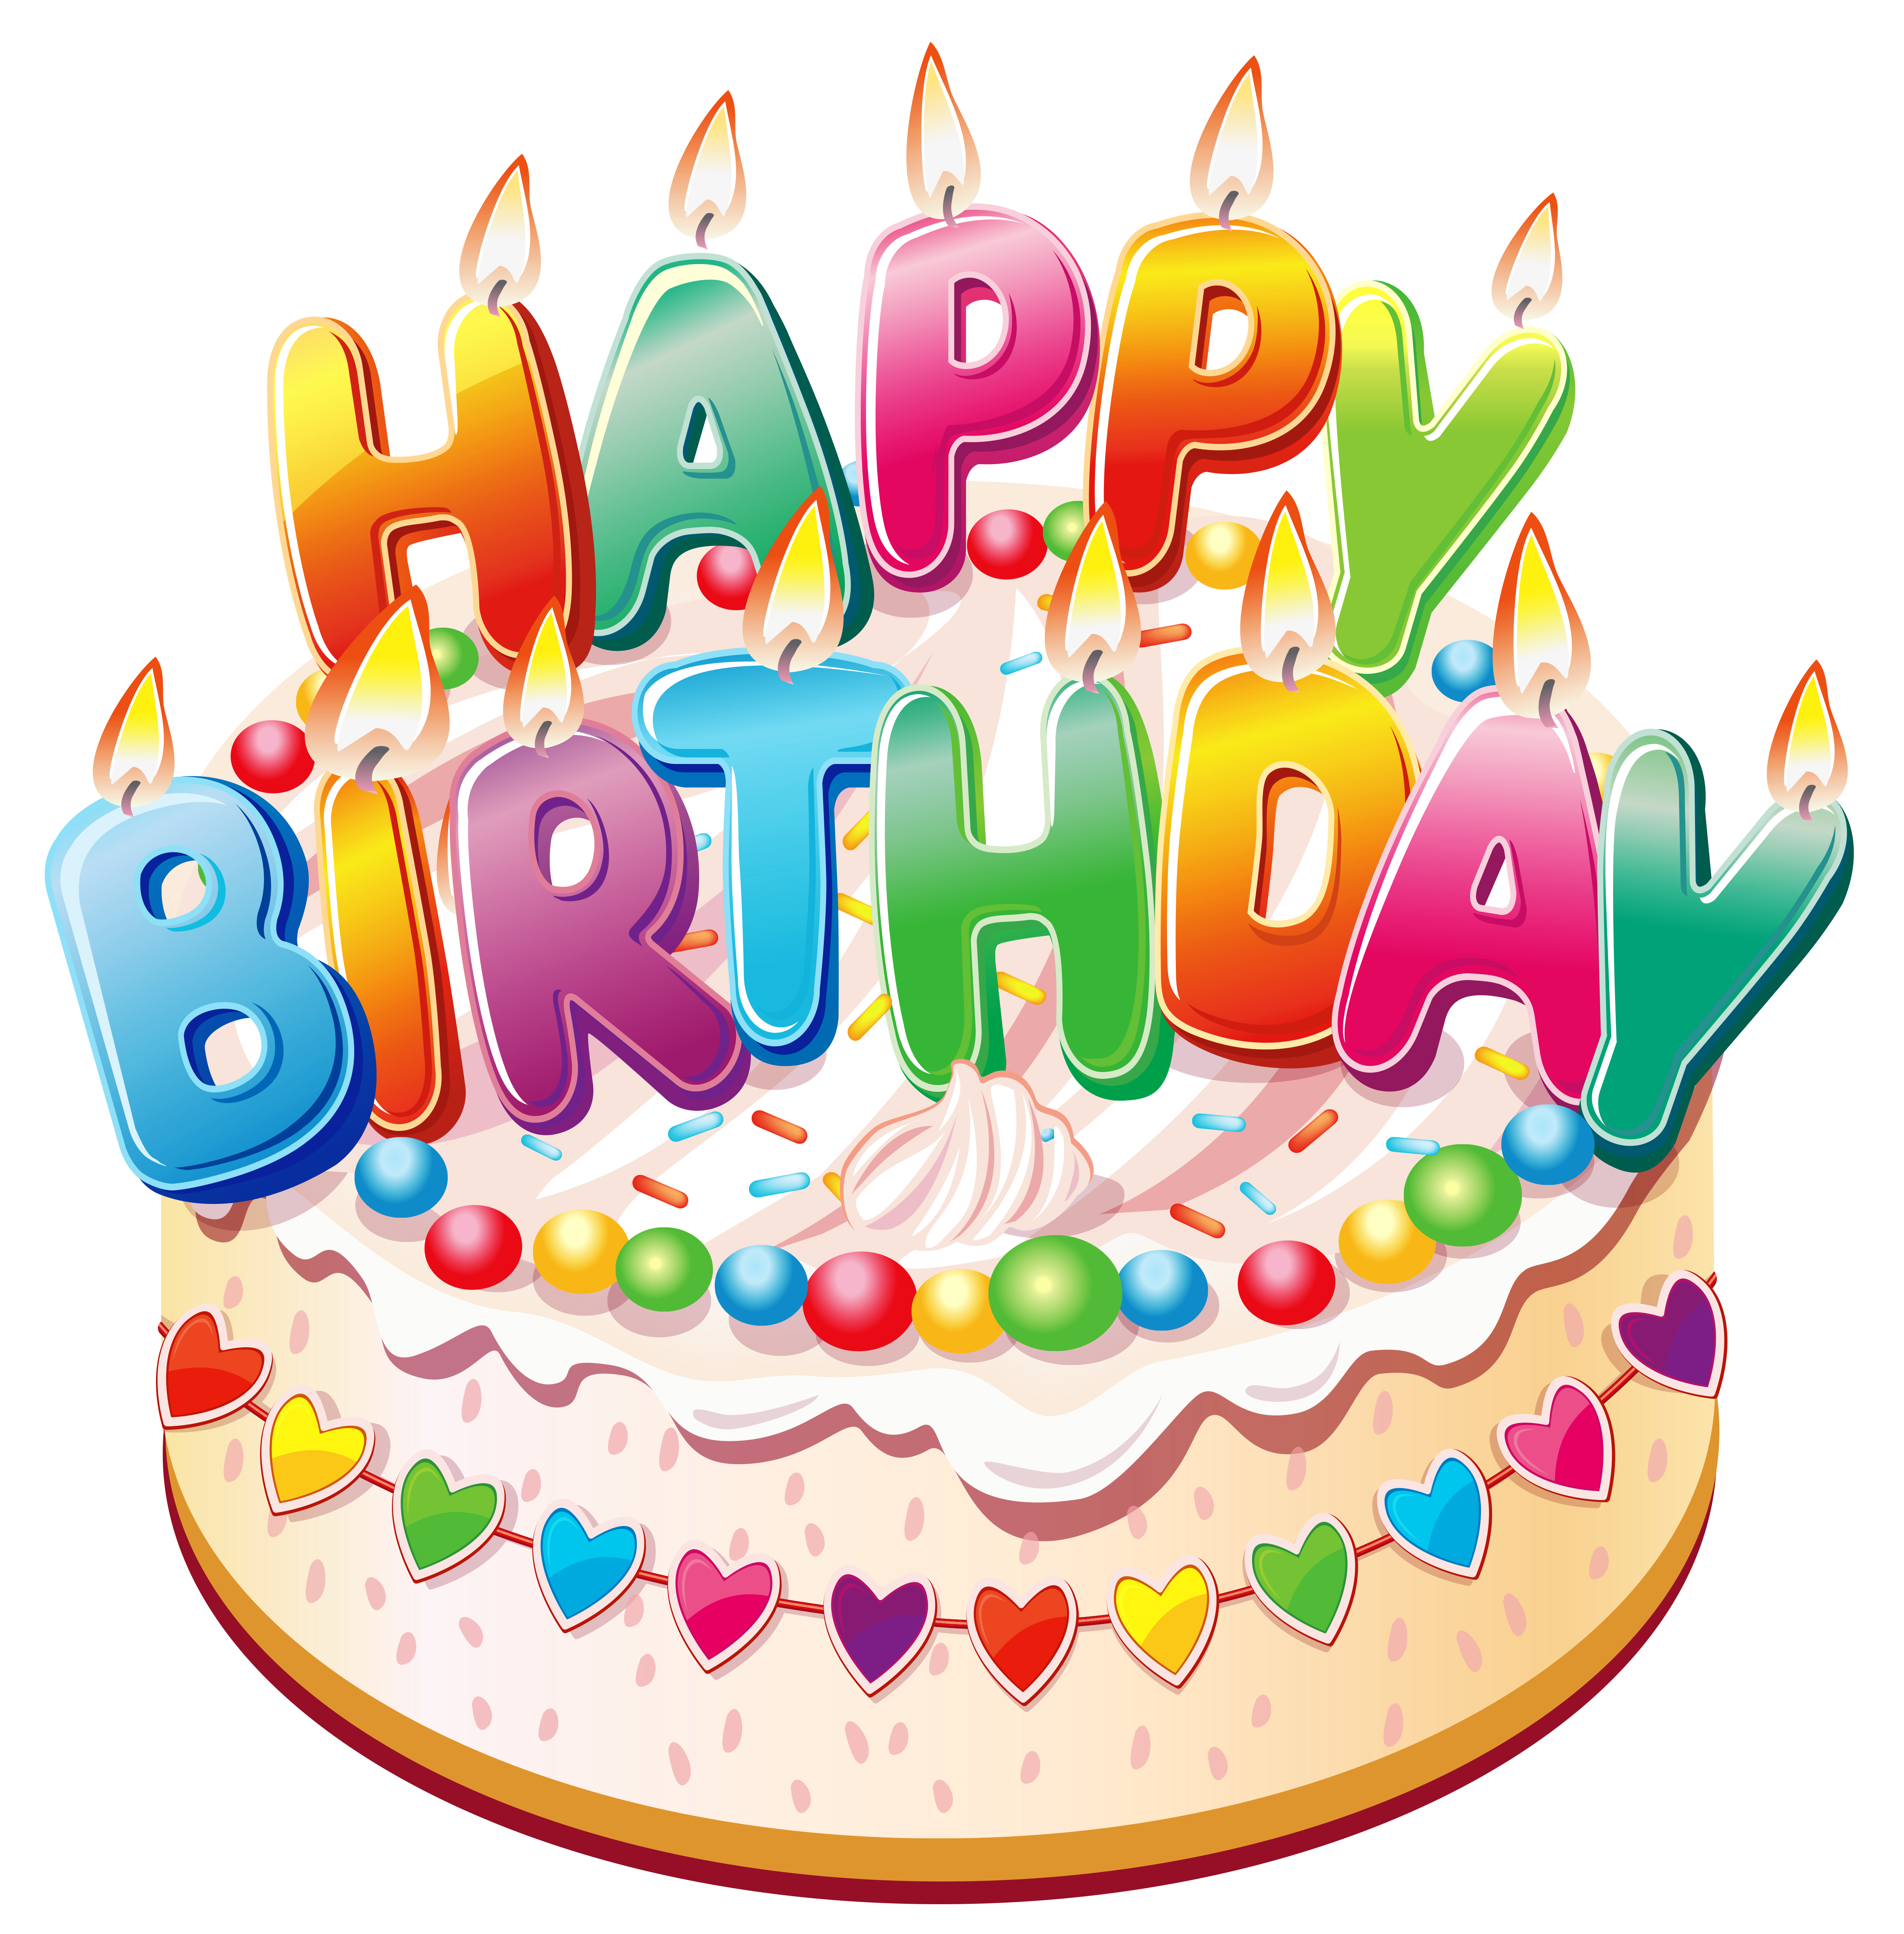 Clipart pictures of birthday .-Clipart pictures of birthday .-16